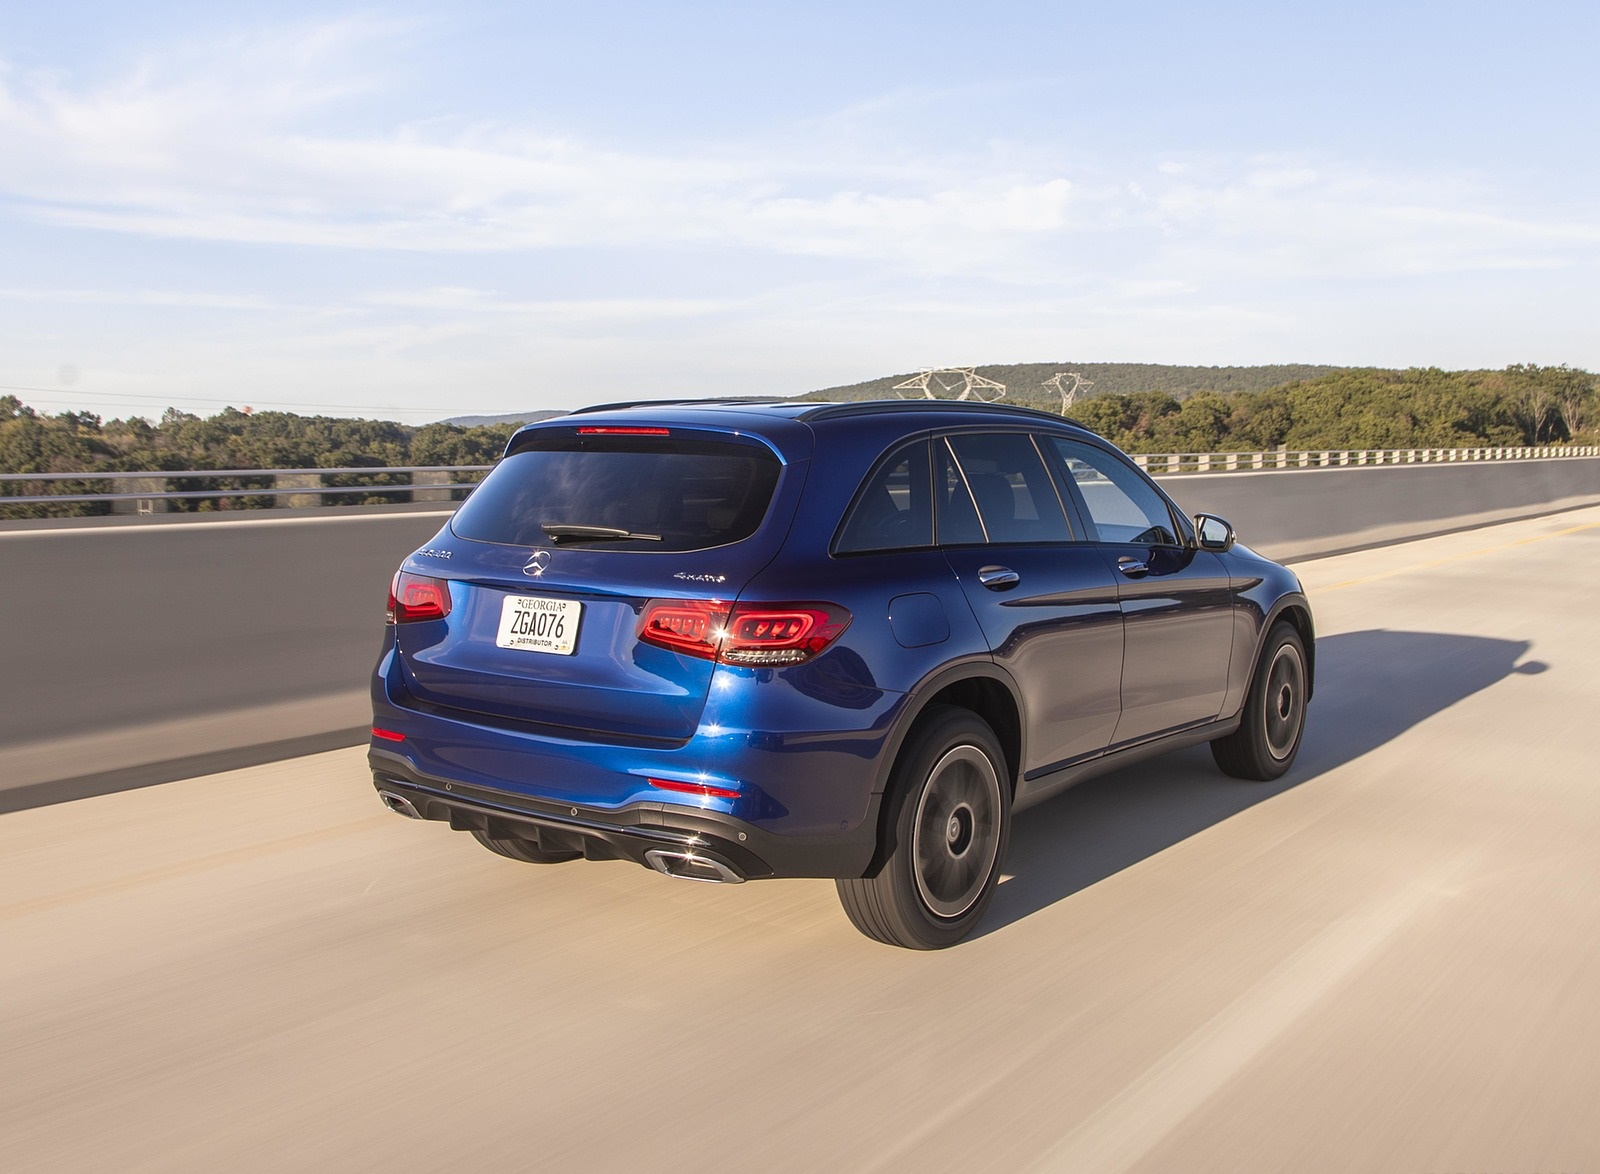 2020 Mercedes-Benz GLC 300 (US-Spec) Rear Three-Quarter Wallpapers #6 of 62